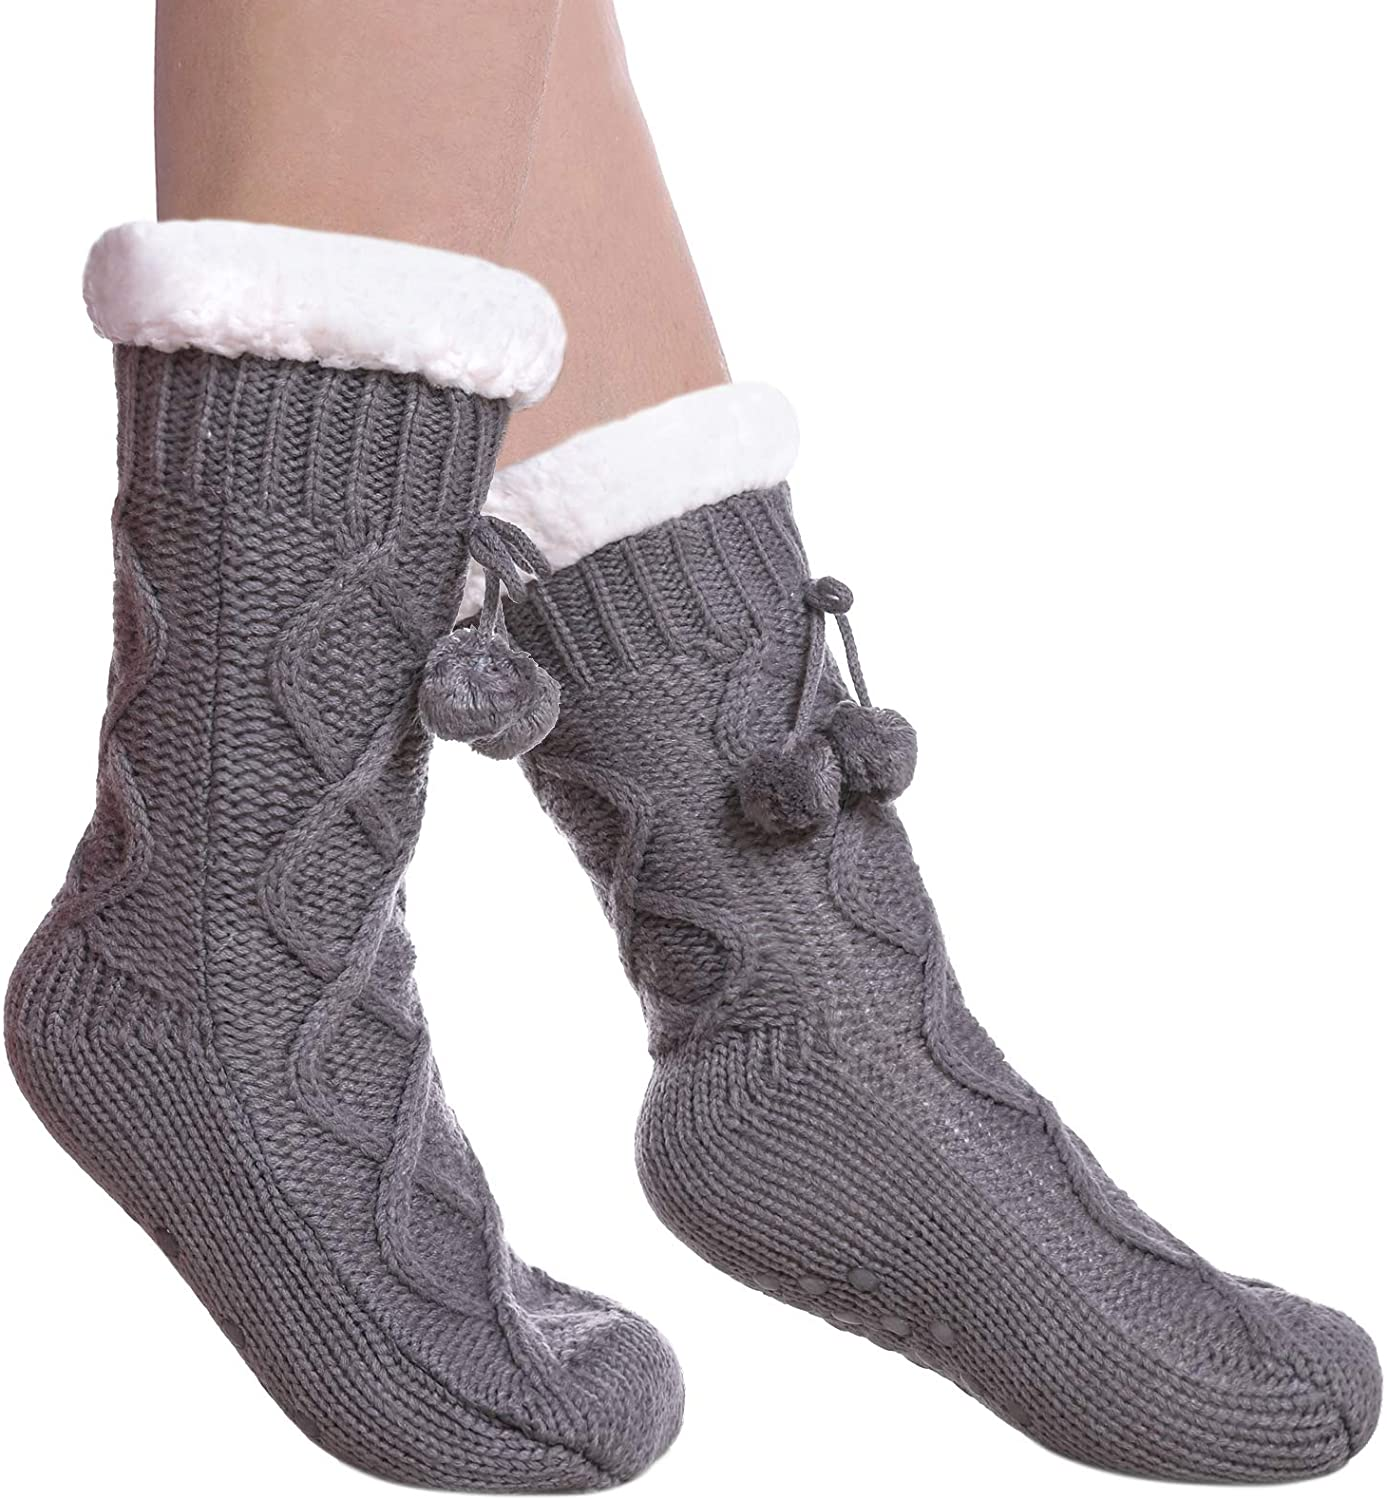 DYW Women's Fuzzy Slipper Socks Soft Winter Thermal Fleece Lining Cozy Non Slip Warm Socks